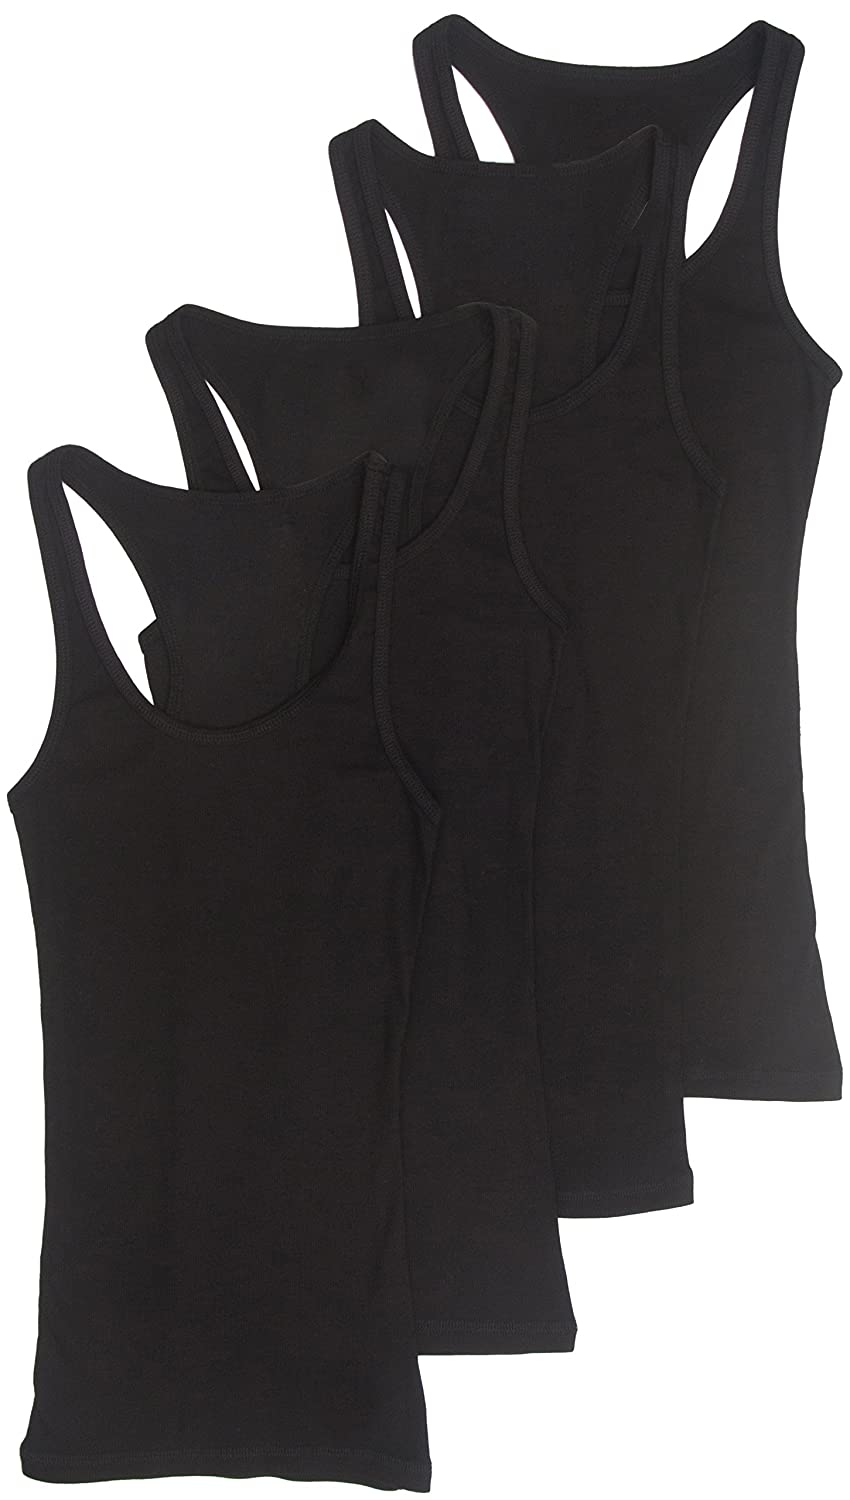 Zenana Outfitters 4 Pack Womens Basic Ribbed Racerback Tank Top